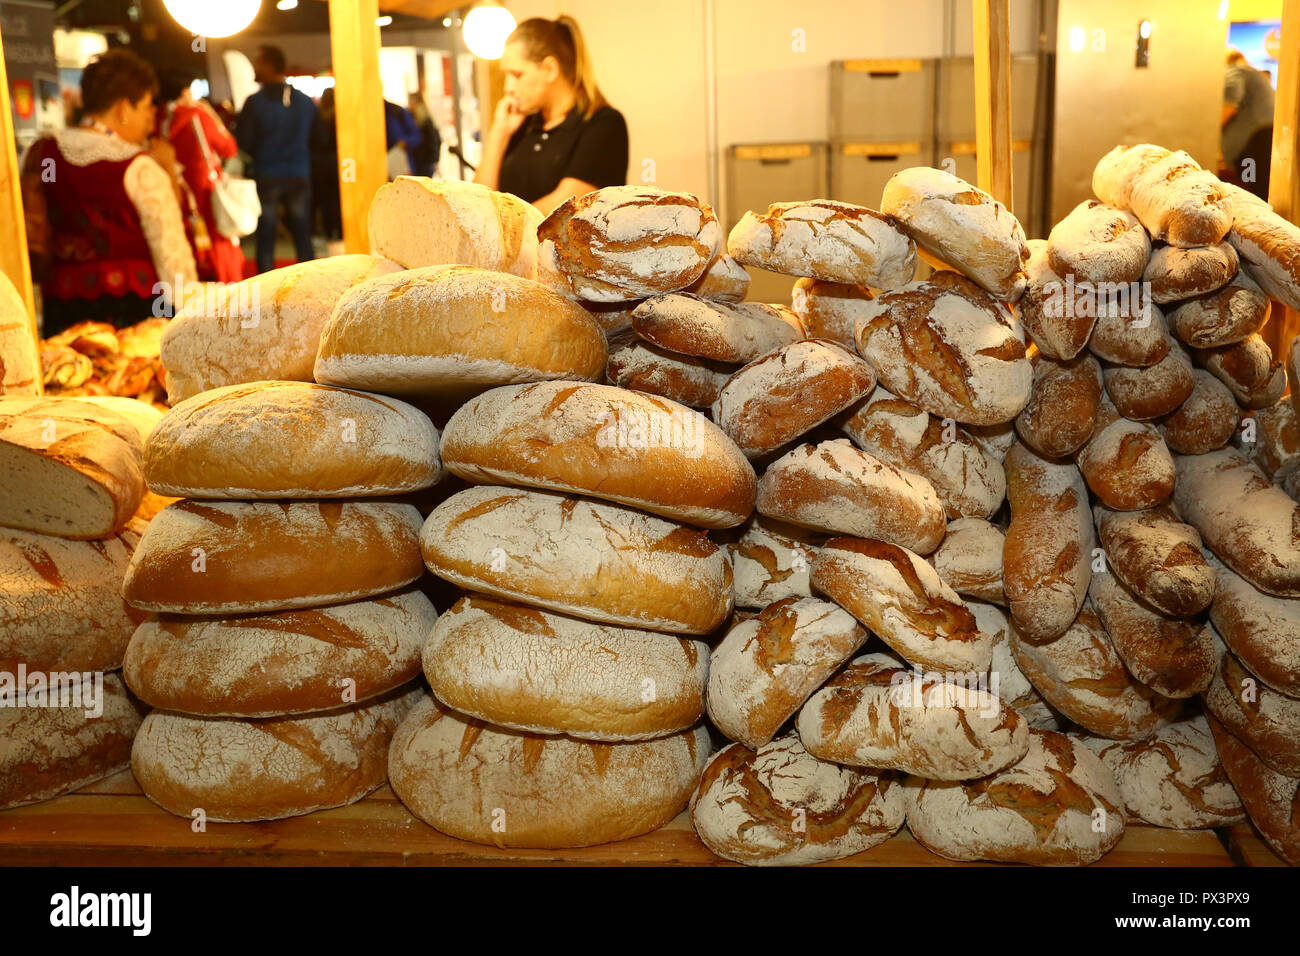 Nadarzyn, Poland, 19th October 2018: Traditional bread stand at World Travel Show. ©Jake Ratz/Alamy Live News - Stock Image